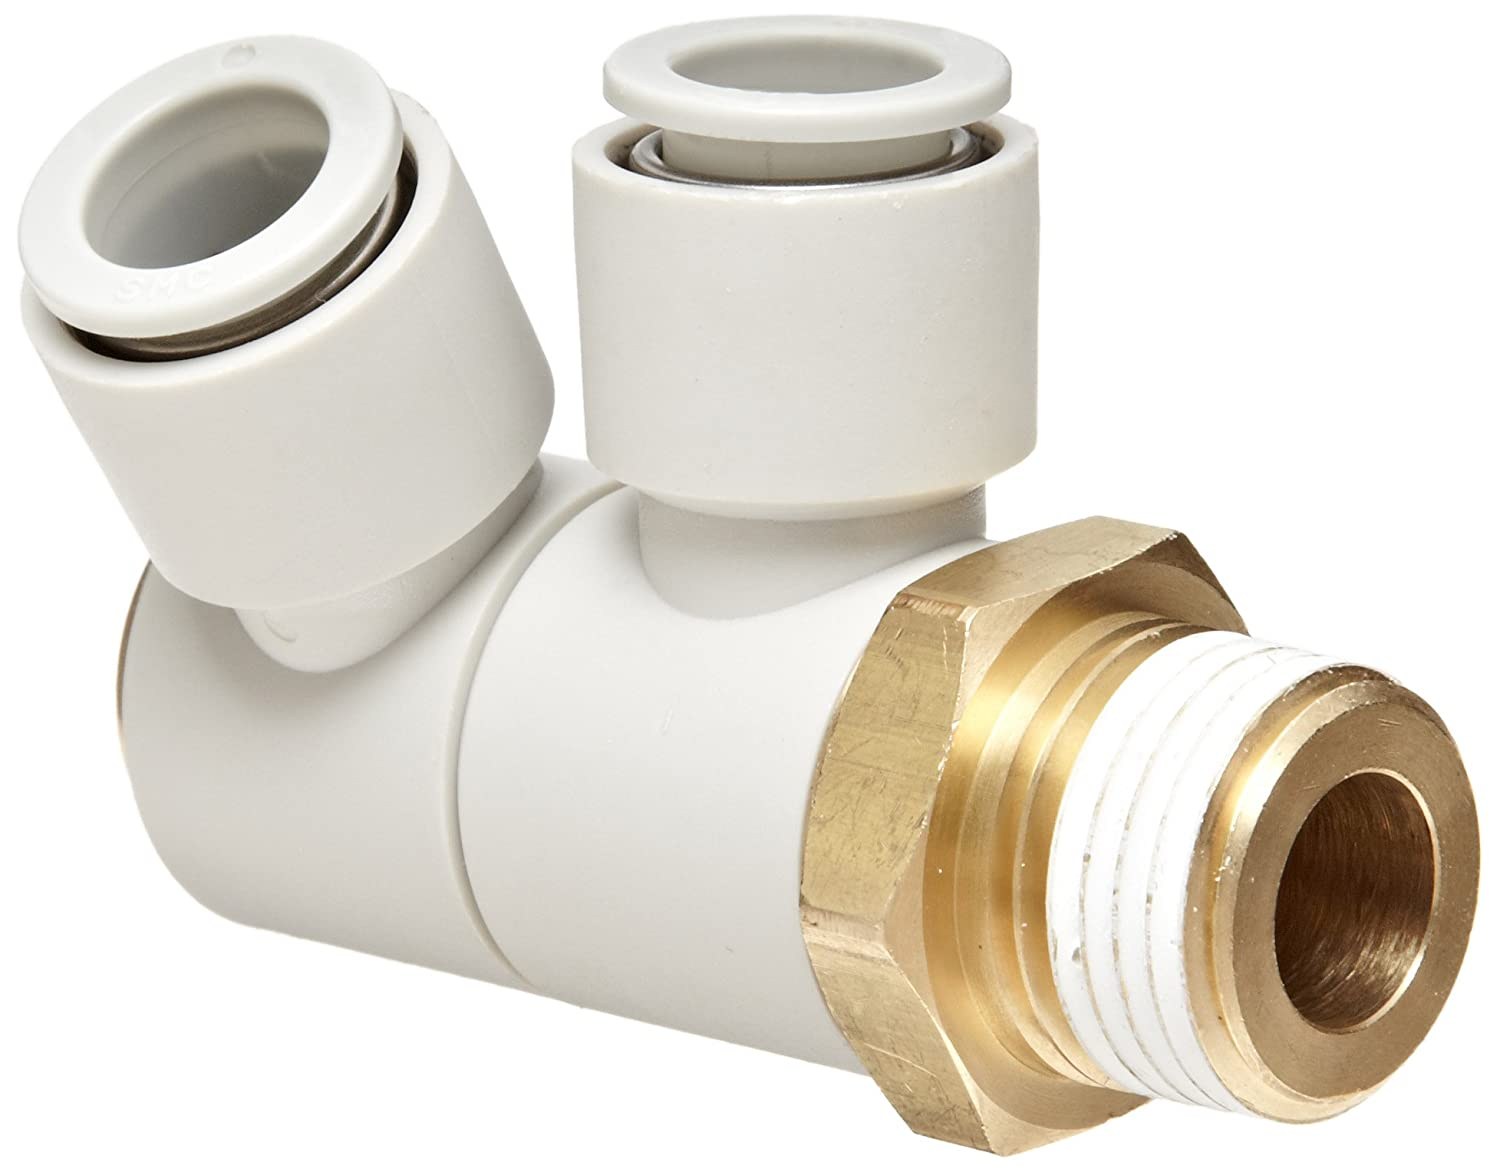 USA Sealing Push to Connect Tube Fitting Male Branch Tee Polybutylene Plastic 12mm Tube OD x 3//8 NPT Male